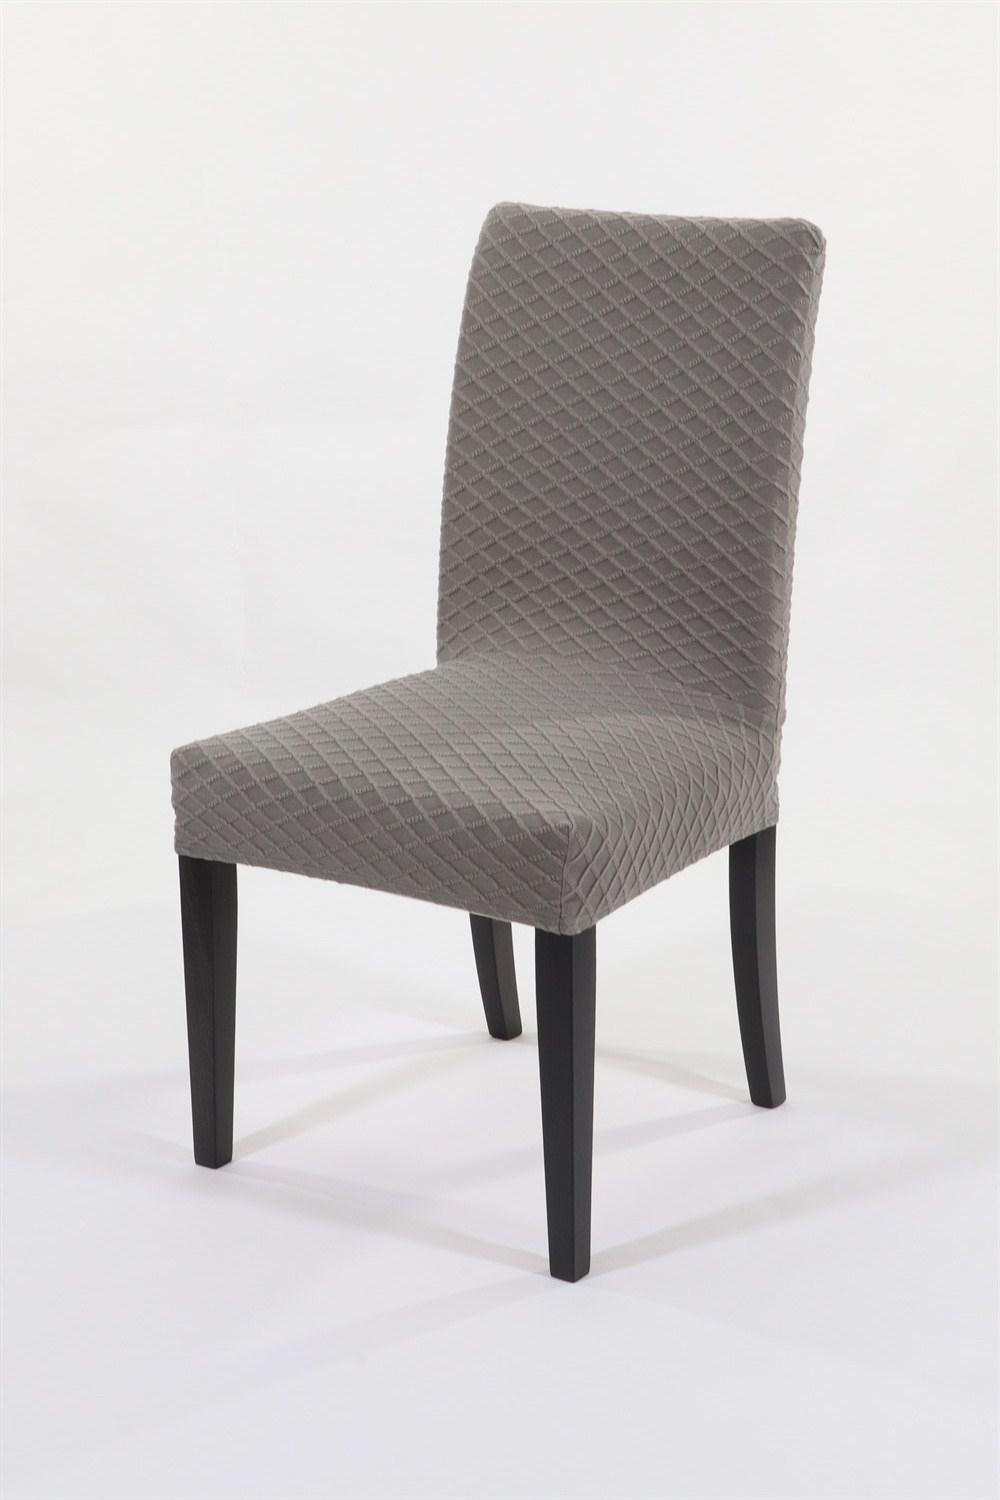 Wholesale China High Quality Spandex Chair Cover